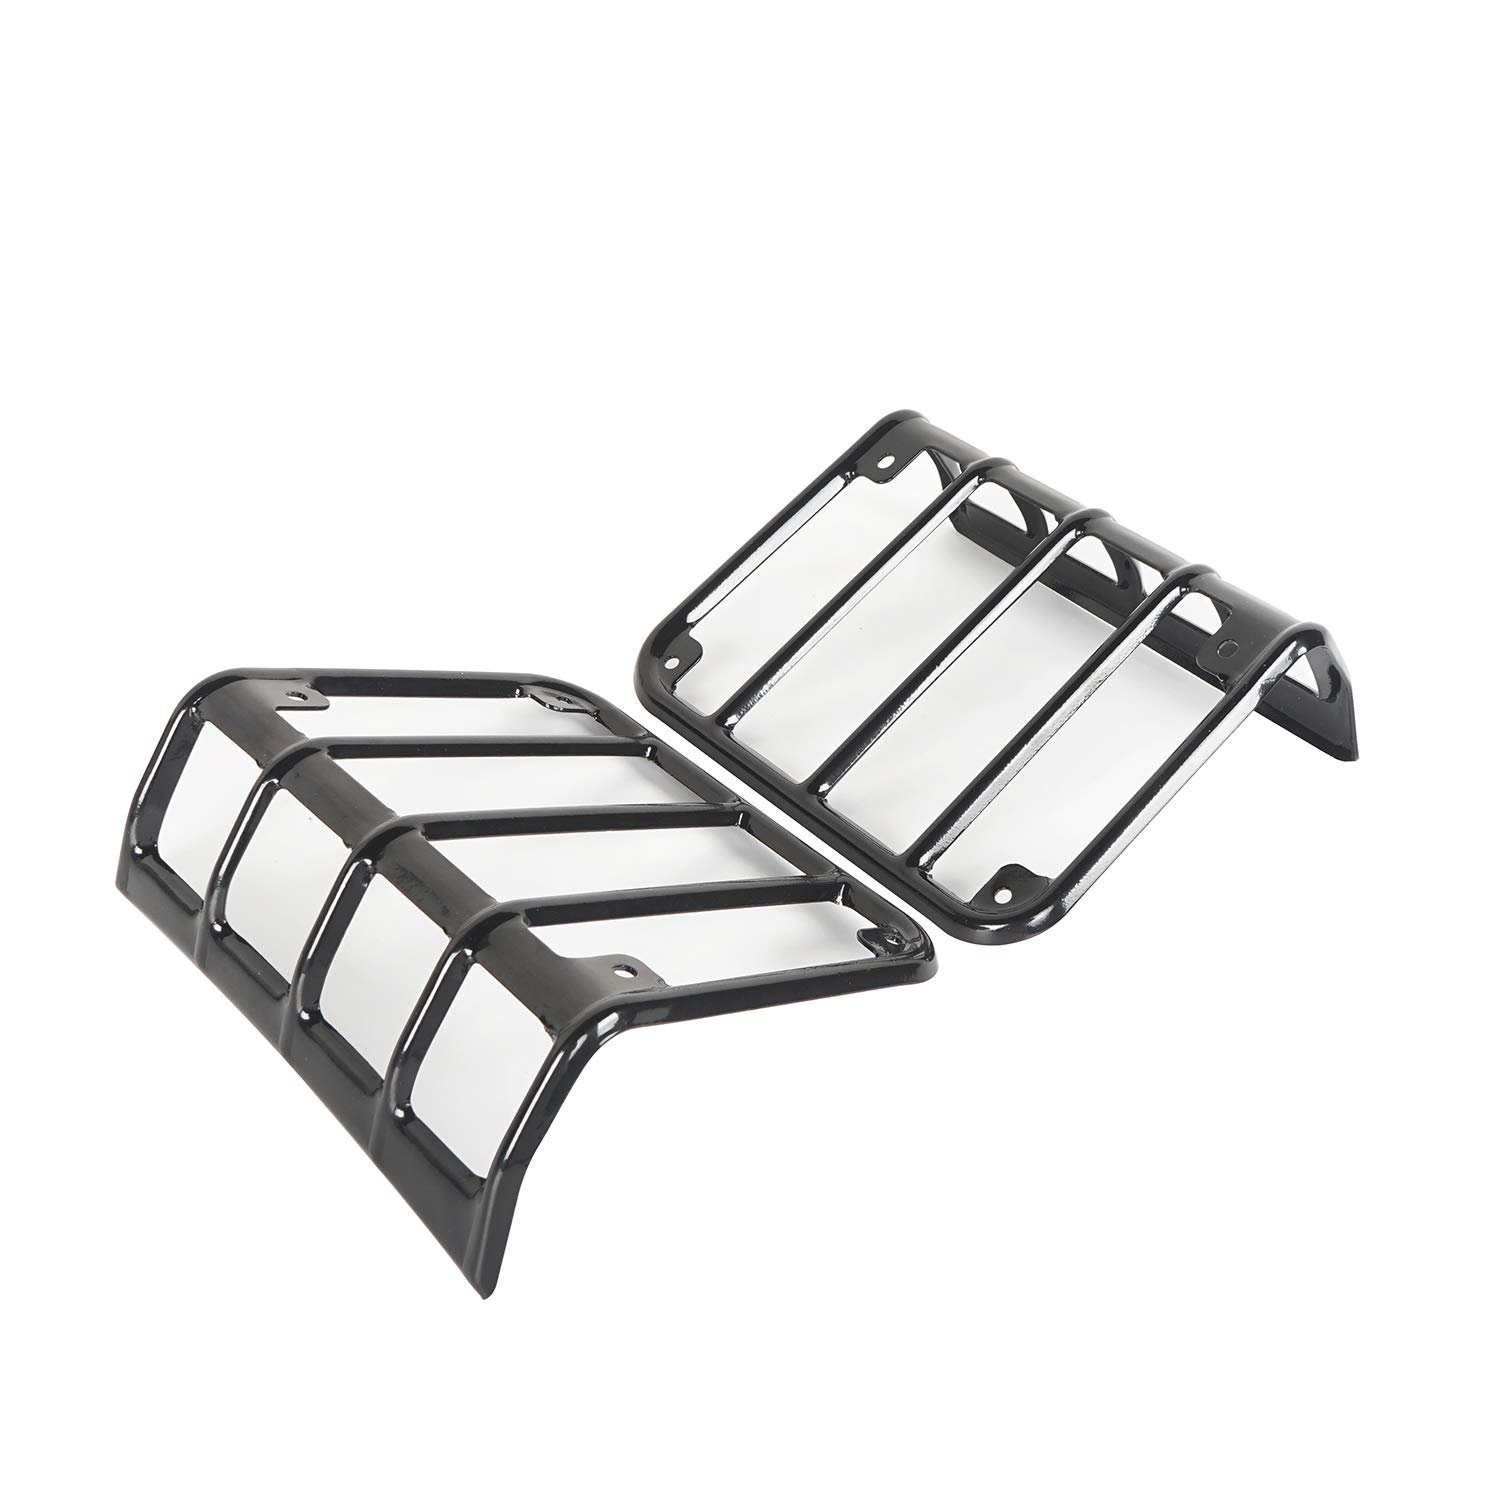 Hooke Road Black Euro Light Guards for Rear Taillight Pair Tail Light Covers fit 2007-2018 Jeep Wrangler JK